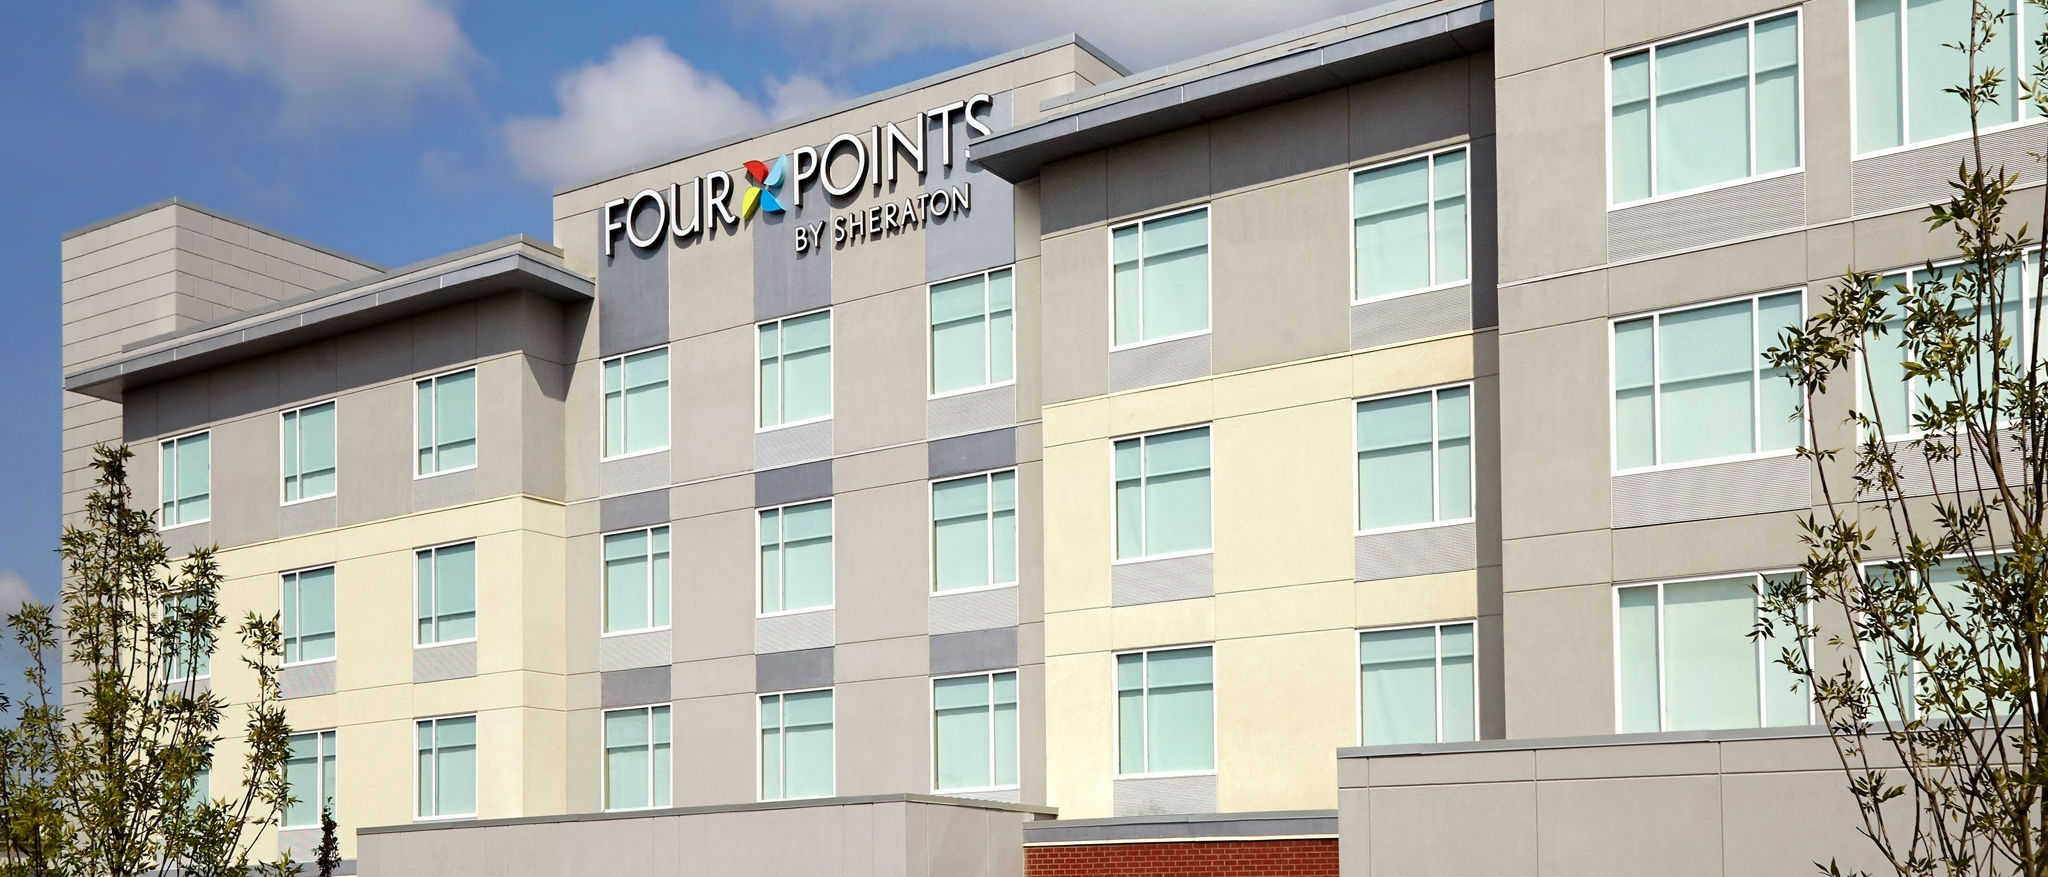 Four Points by Sheraton Edmonton International Airport - Hotel Exterior